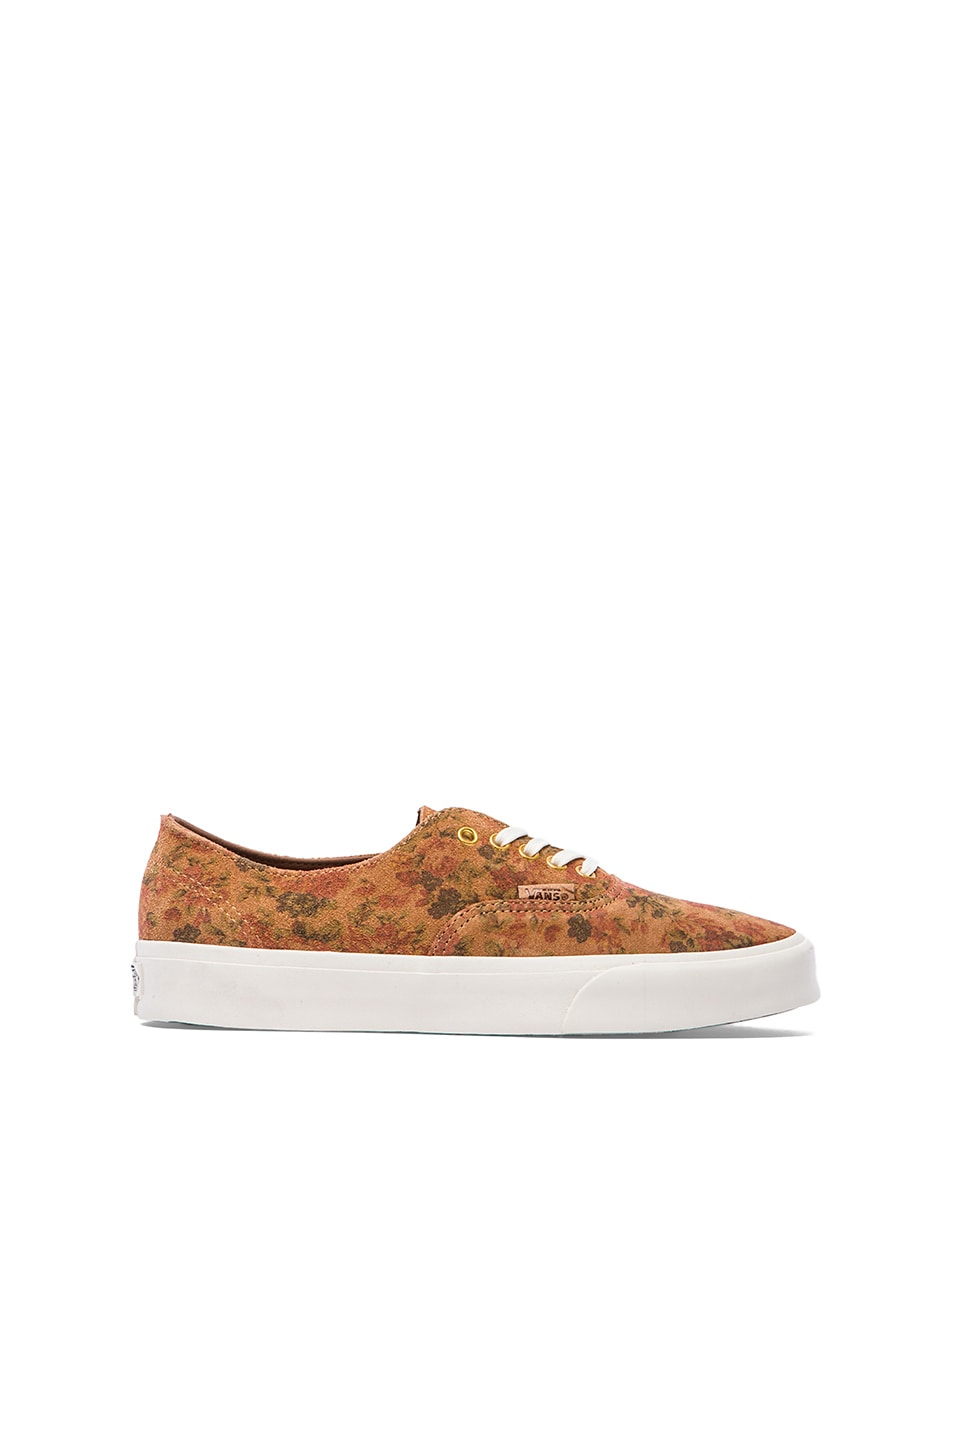 Vans Californnia Authentic Decon Floral Suede in Indian Tan